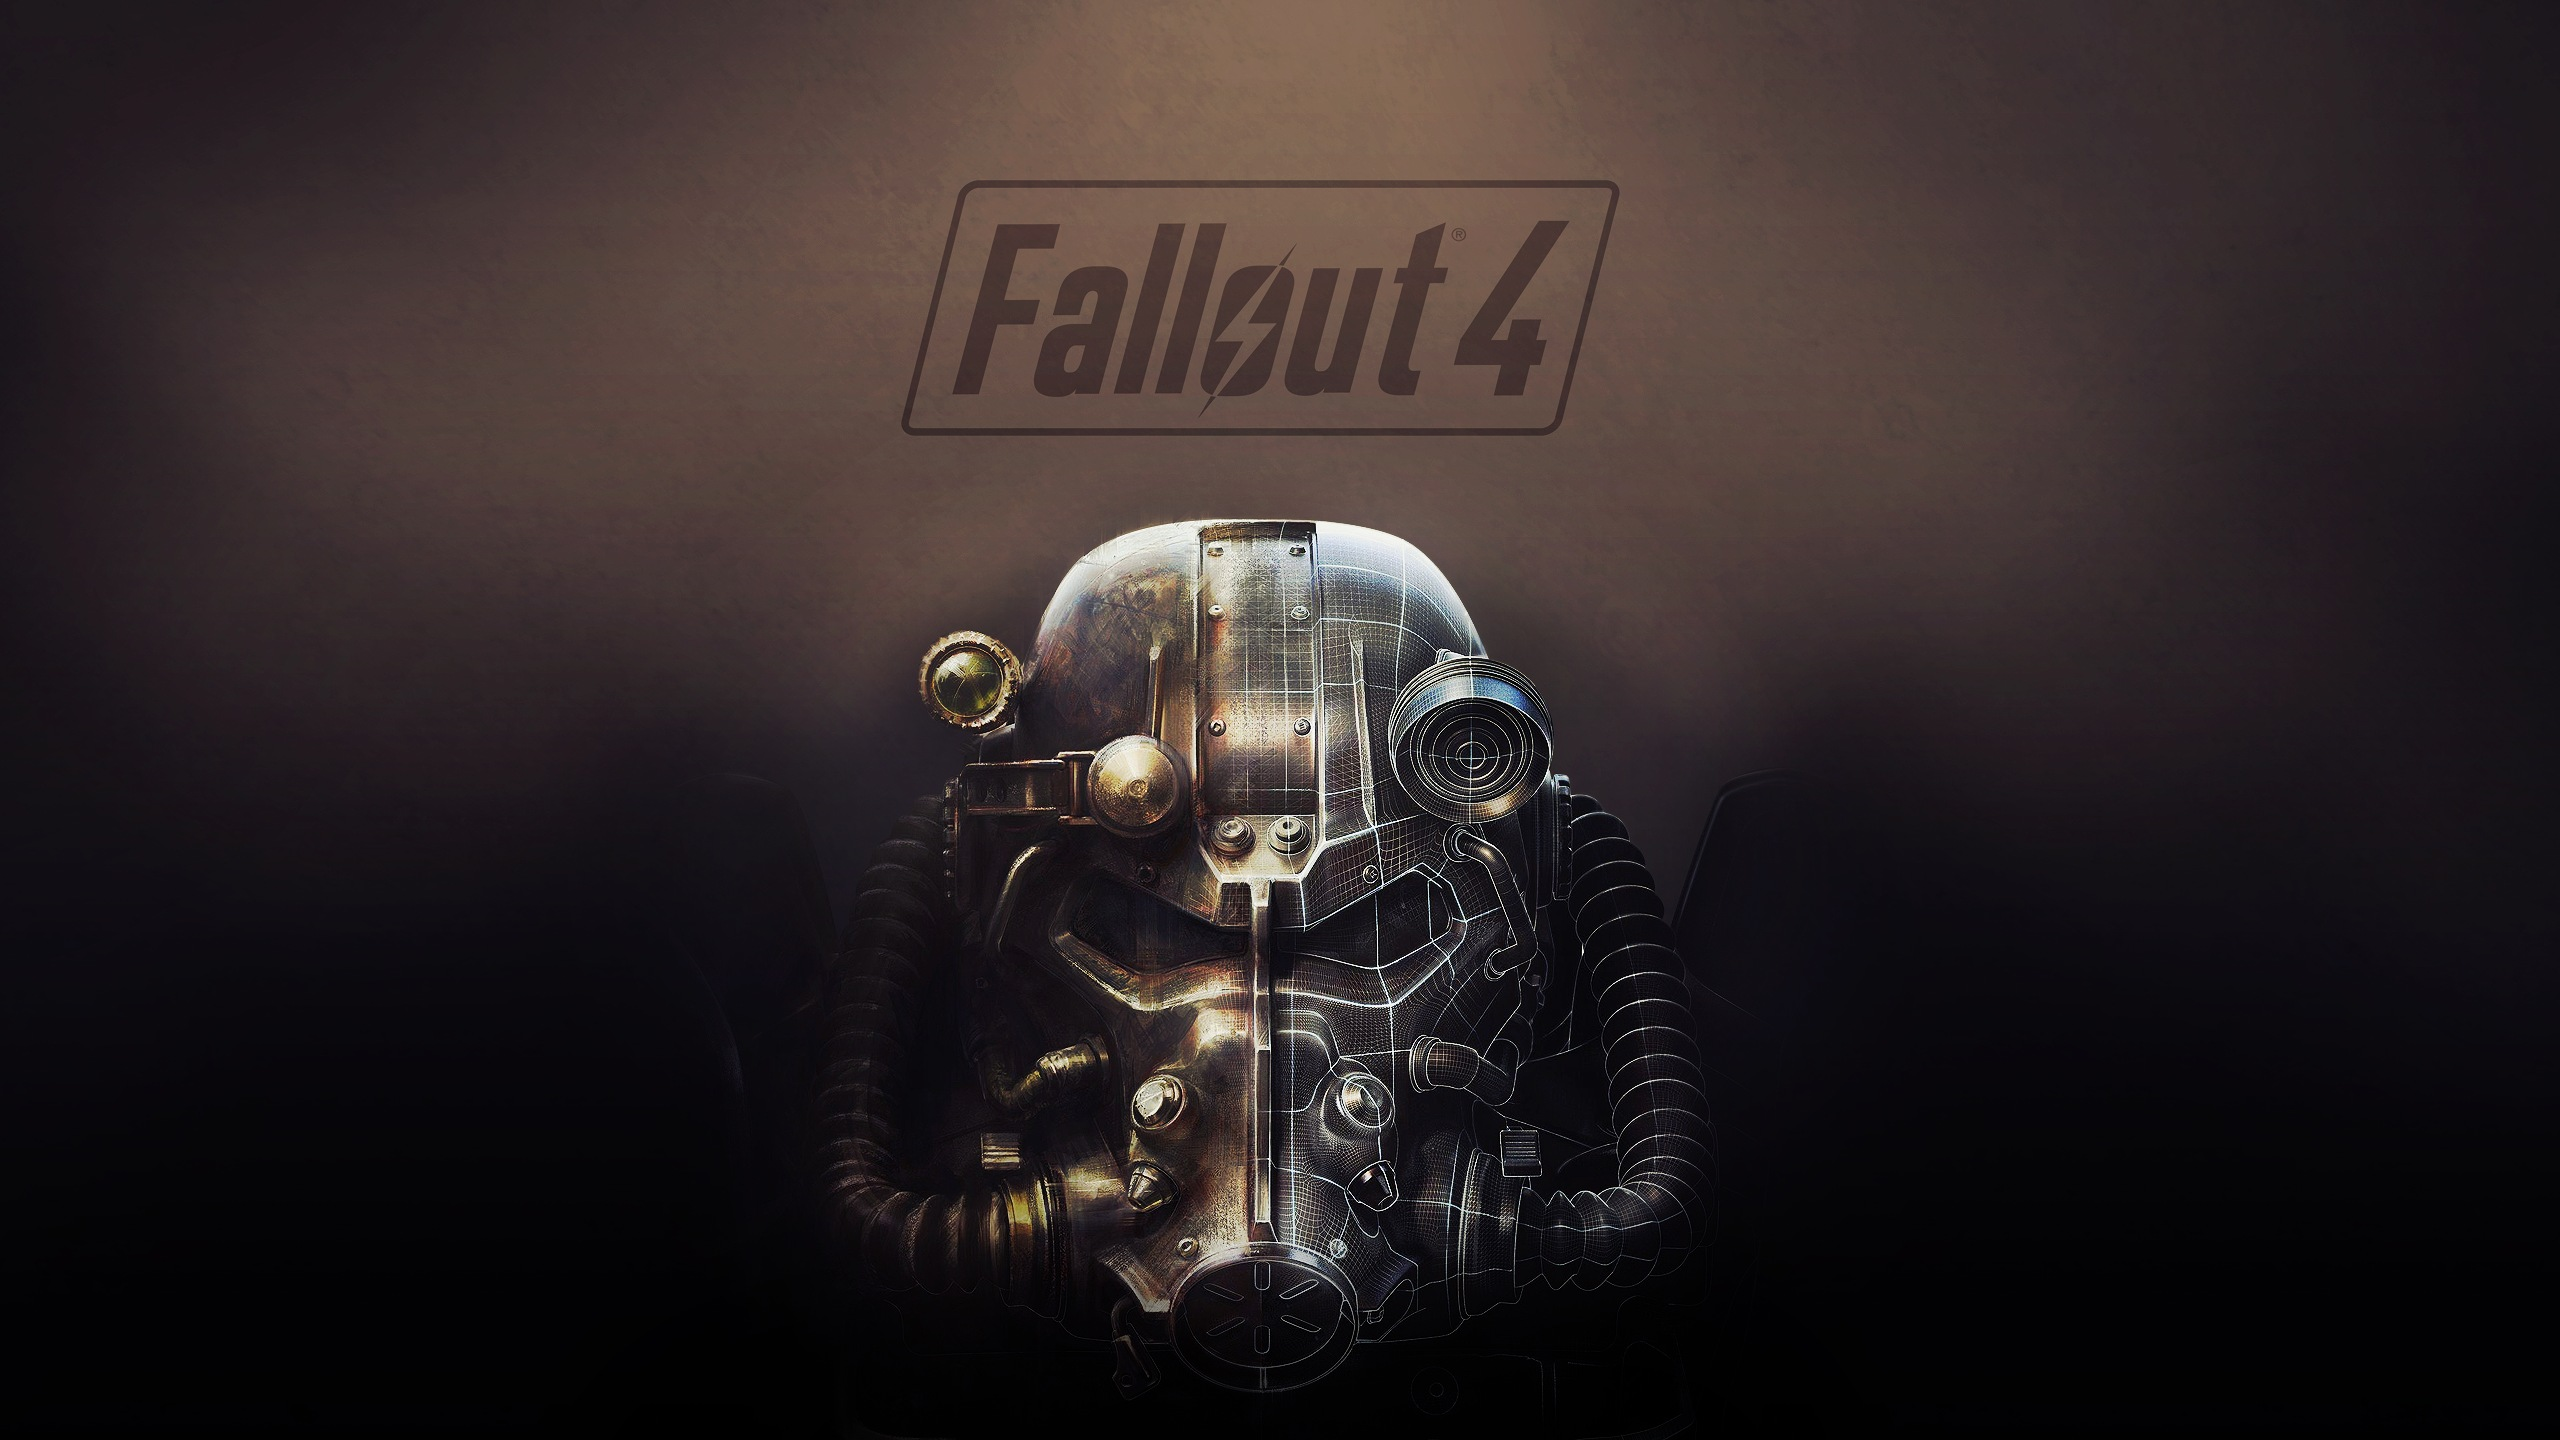 Fallout 4 Wallpapers 35 Awesome Images for Your Computer 2560x1440